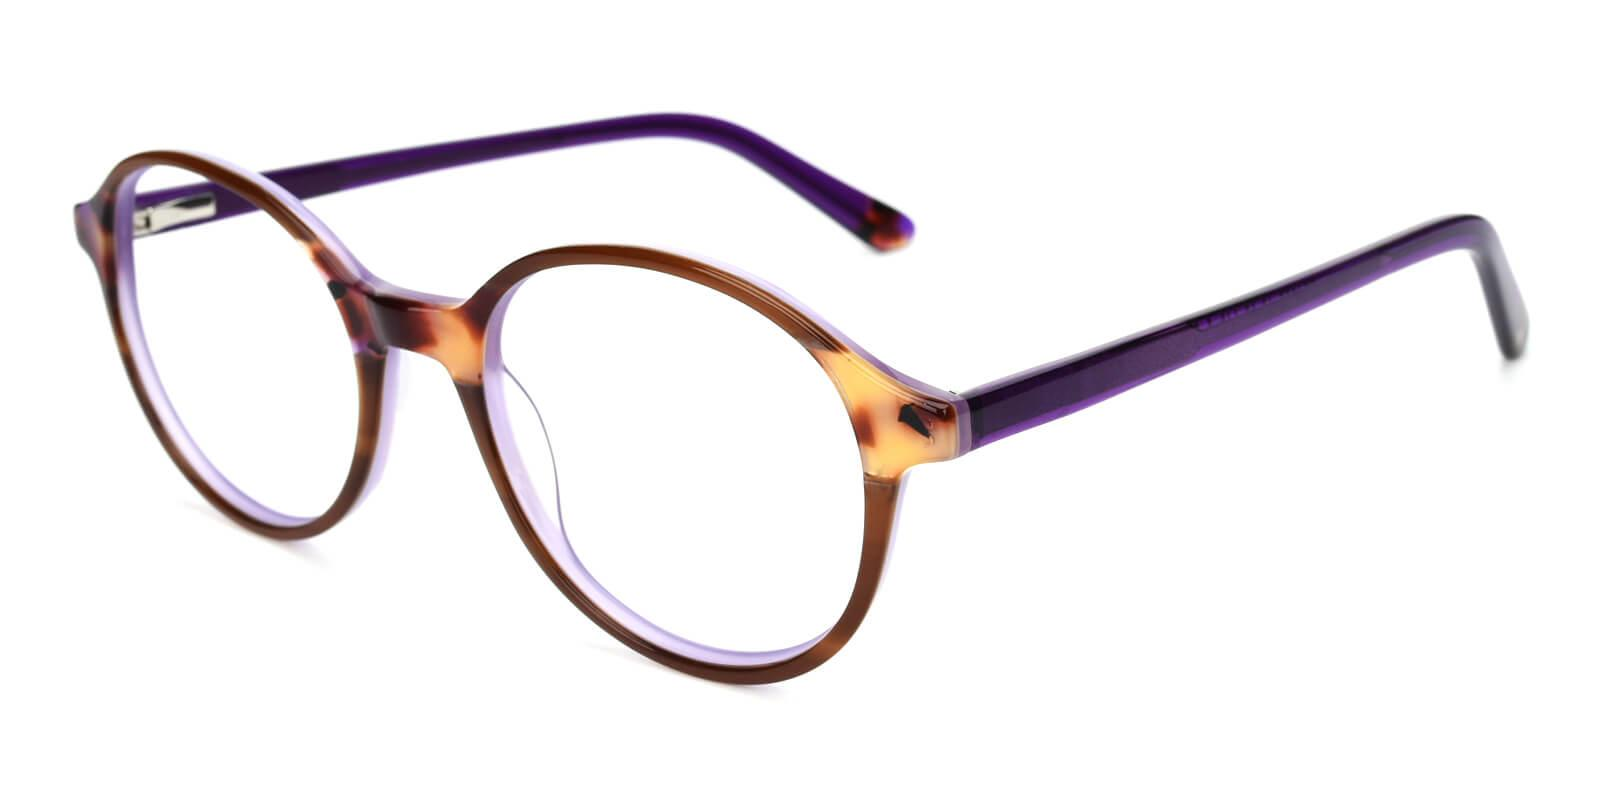 Giselle-Purple-Oval-Acetate-Eyeglasses-additional1